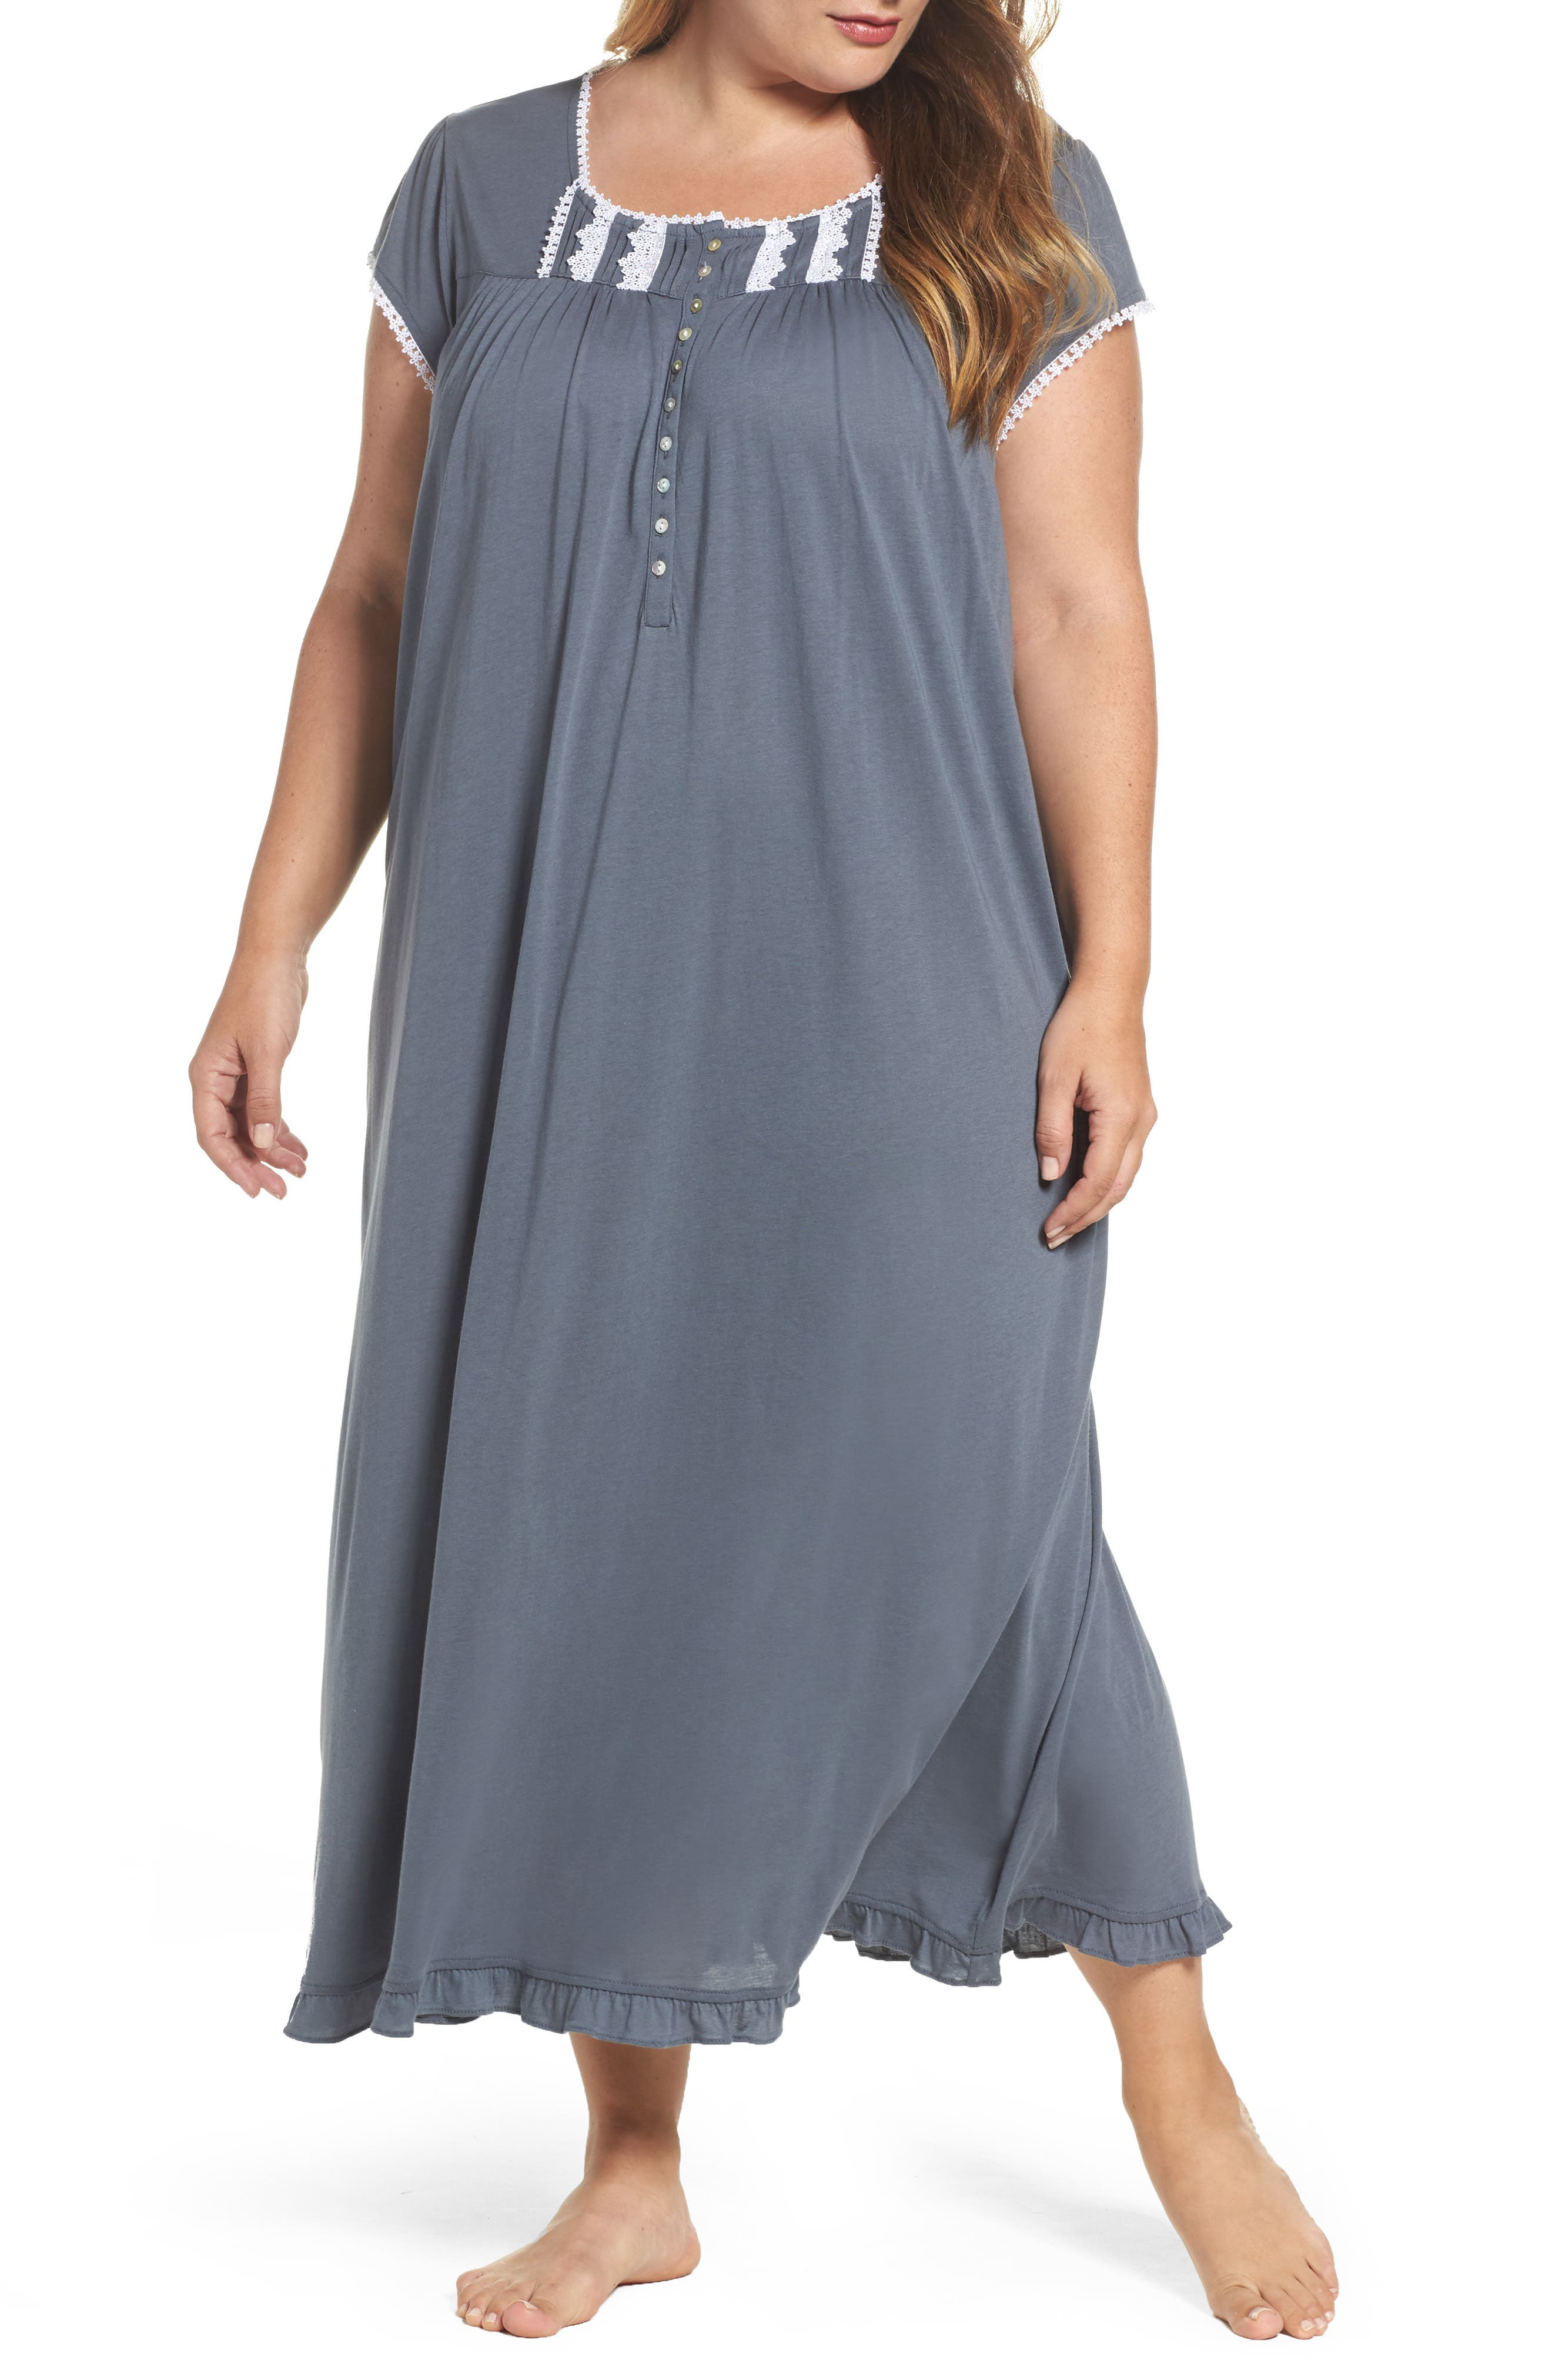 Alternate Image 1 Selected - Eileen West Cotton & Modal Long Nightgown (Plus Size)